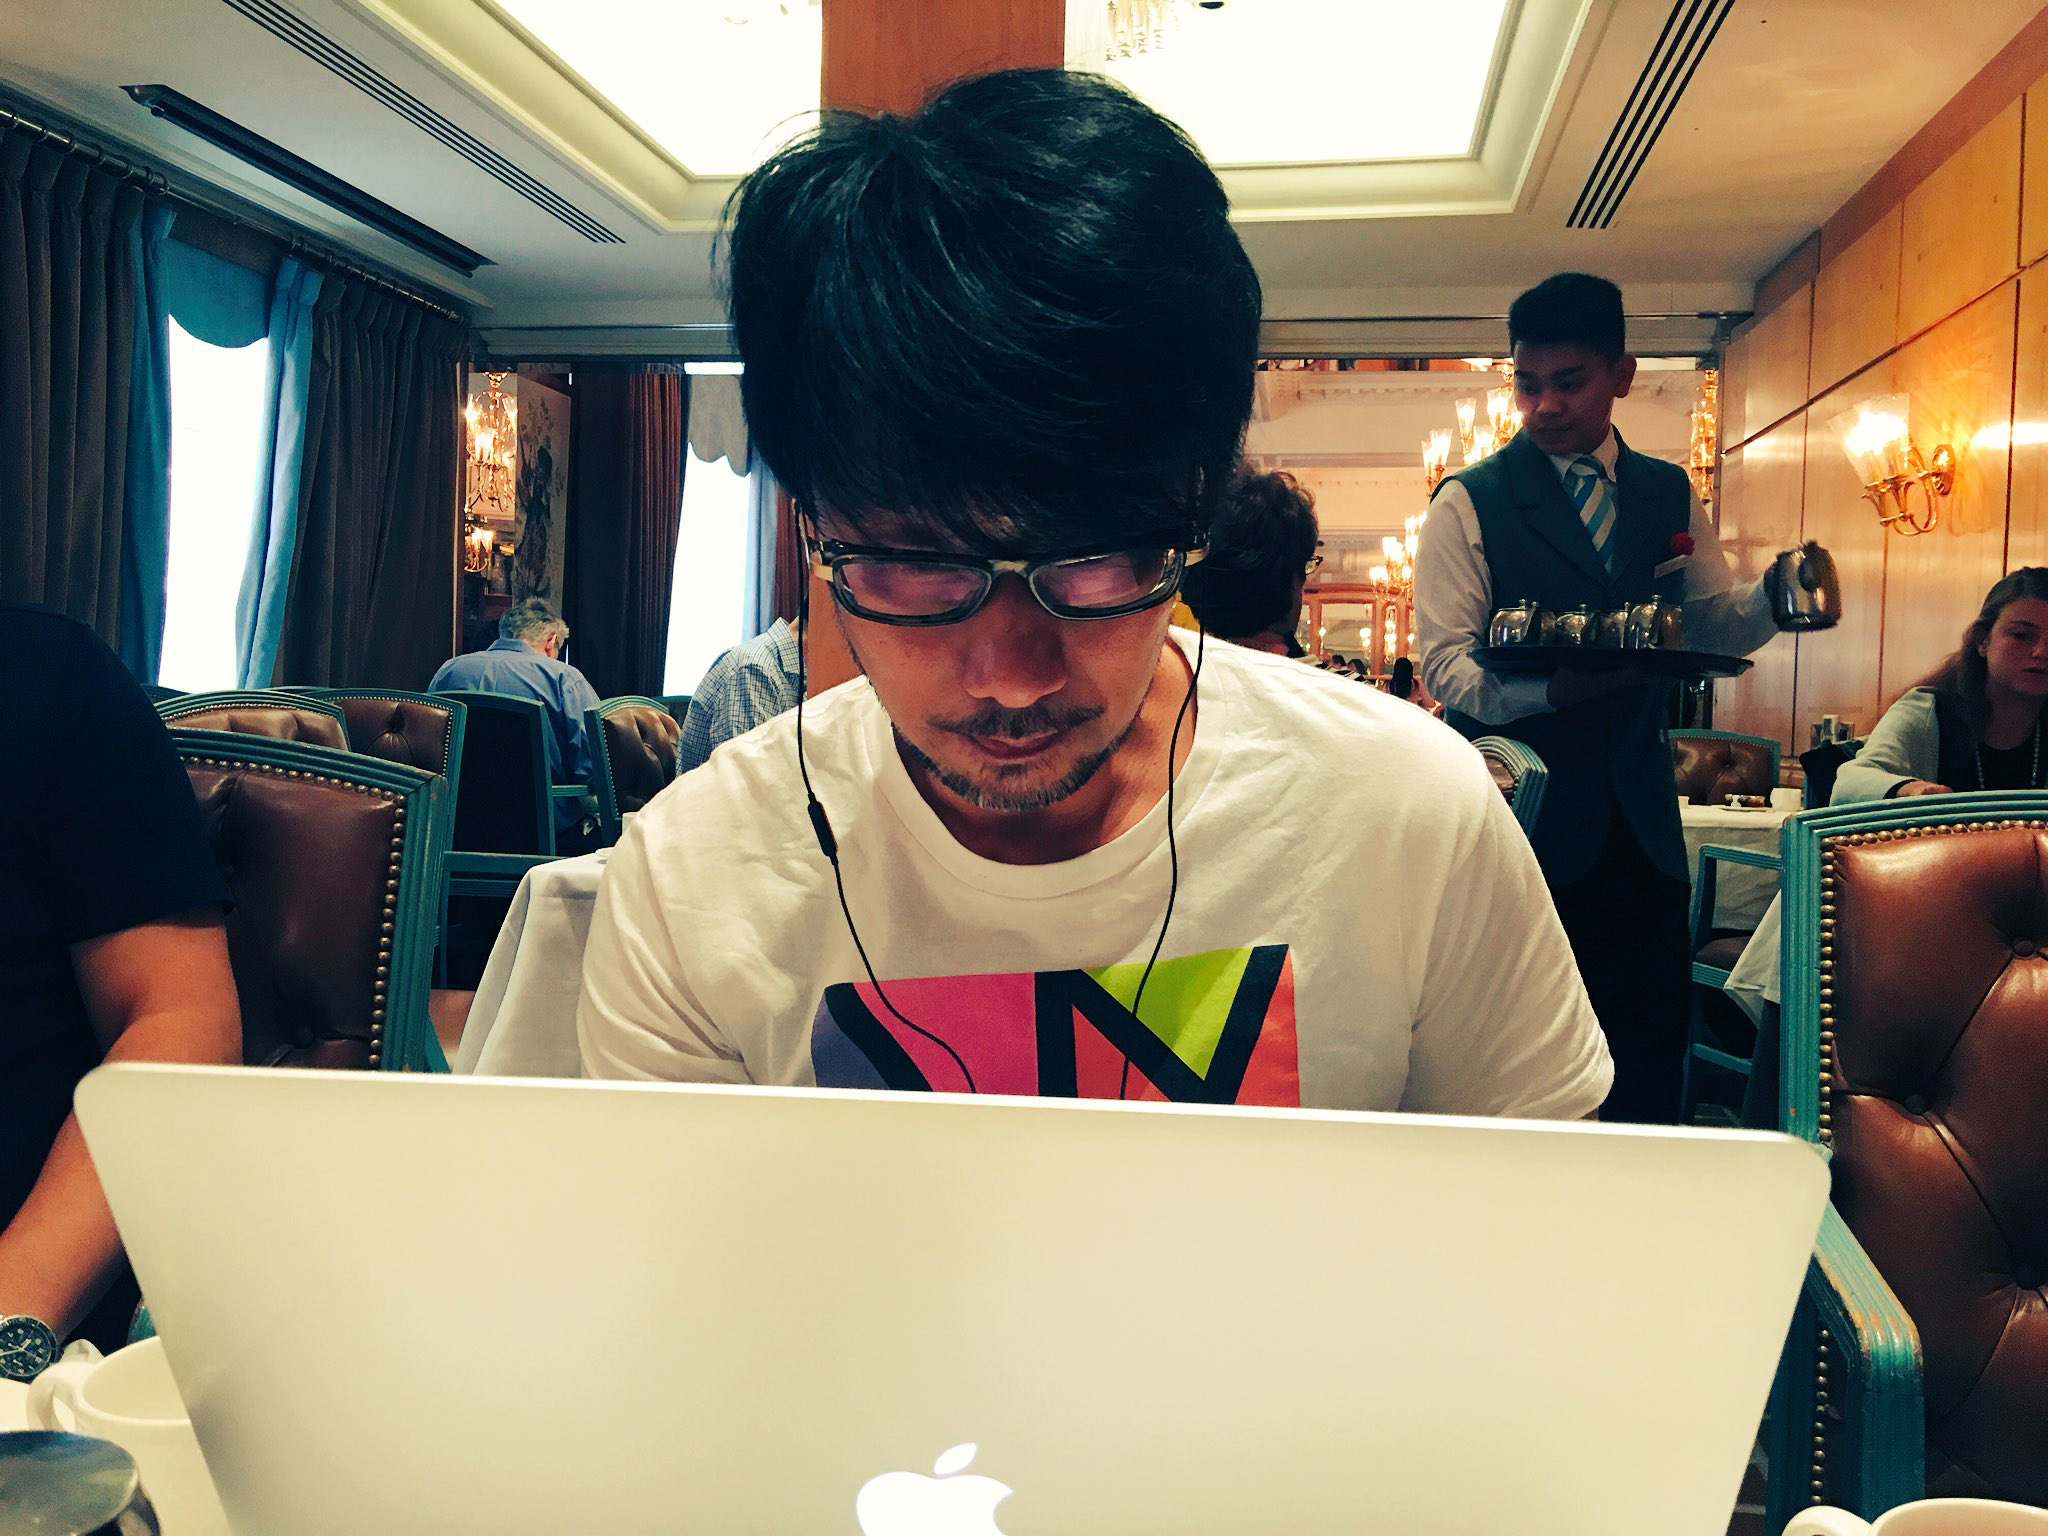 """Good morning from London🇬🇧 Hideo Kojima checking some footage during breakfast."" - Ayako"